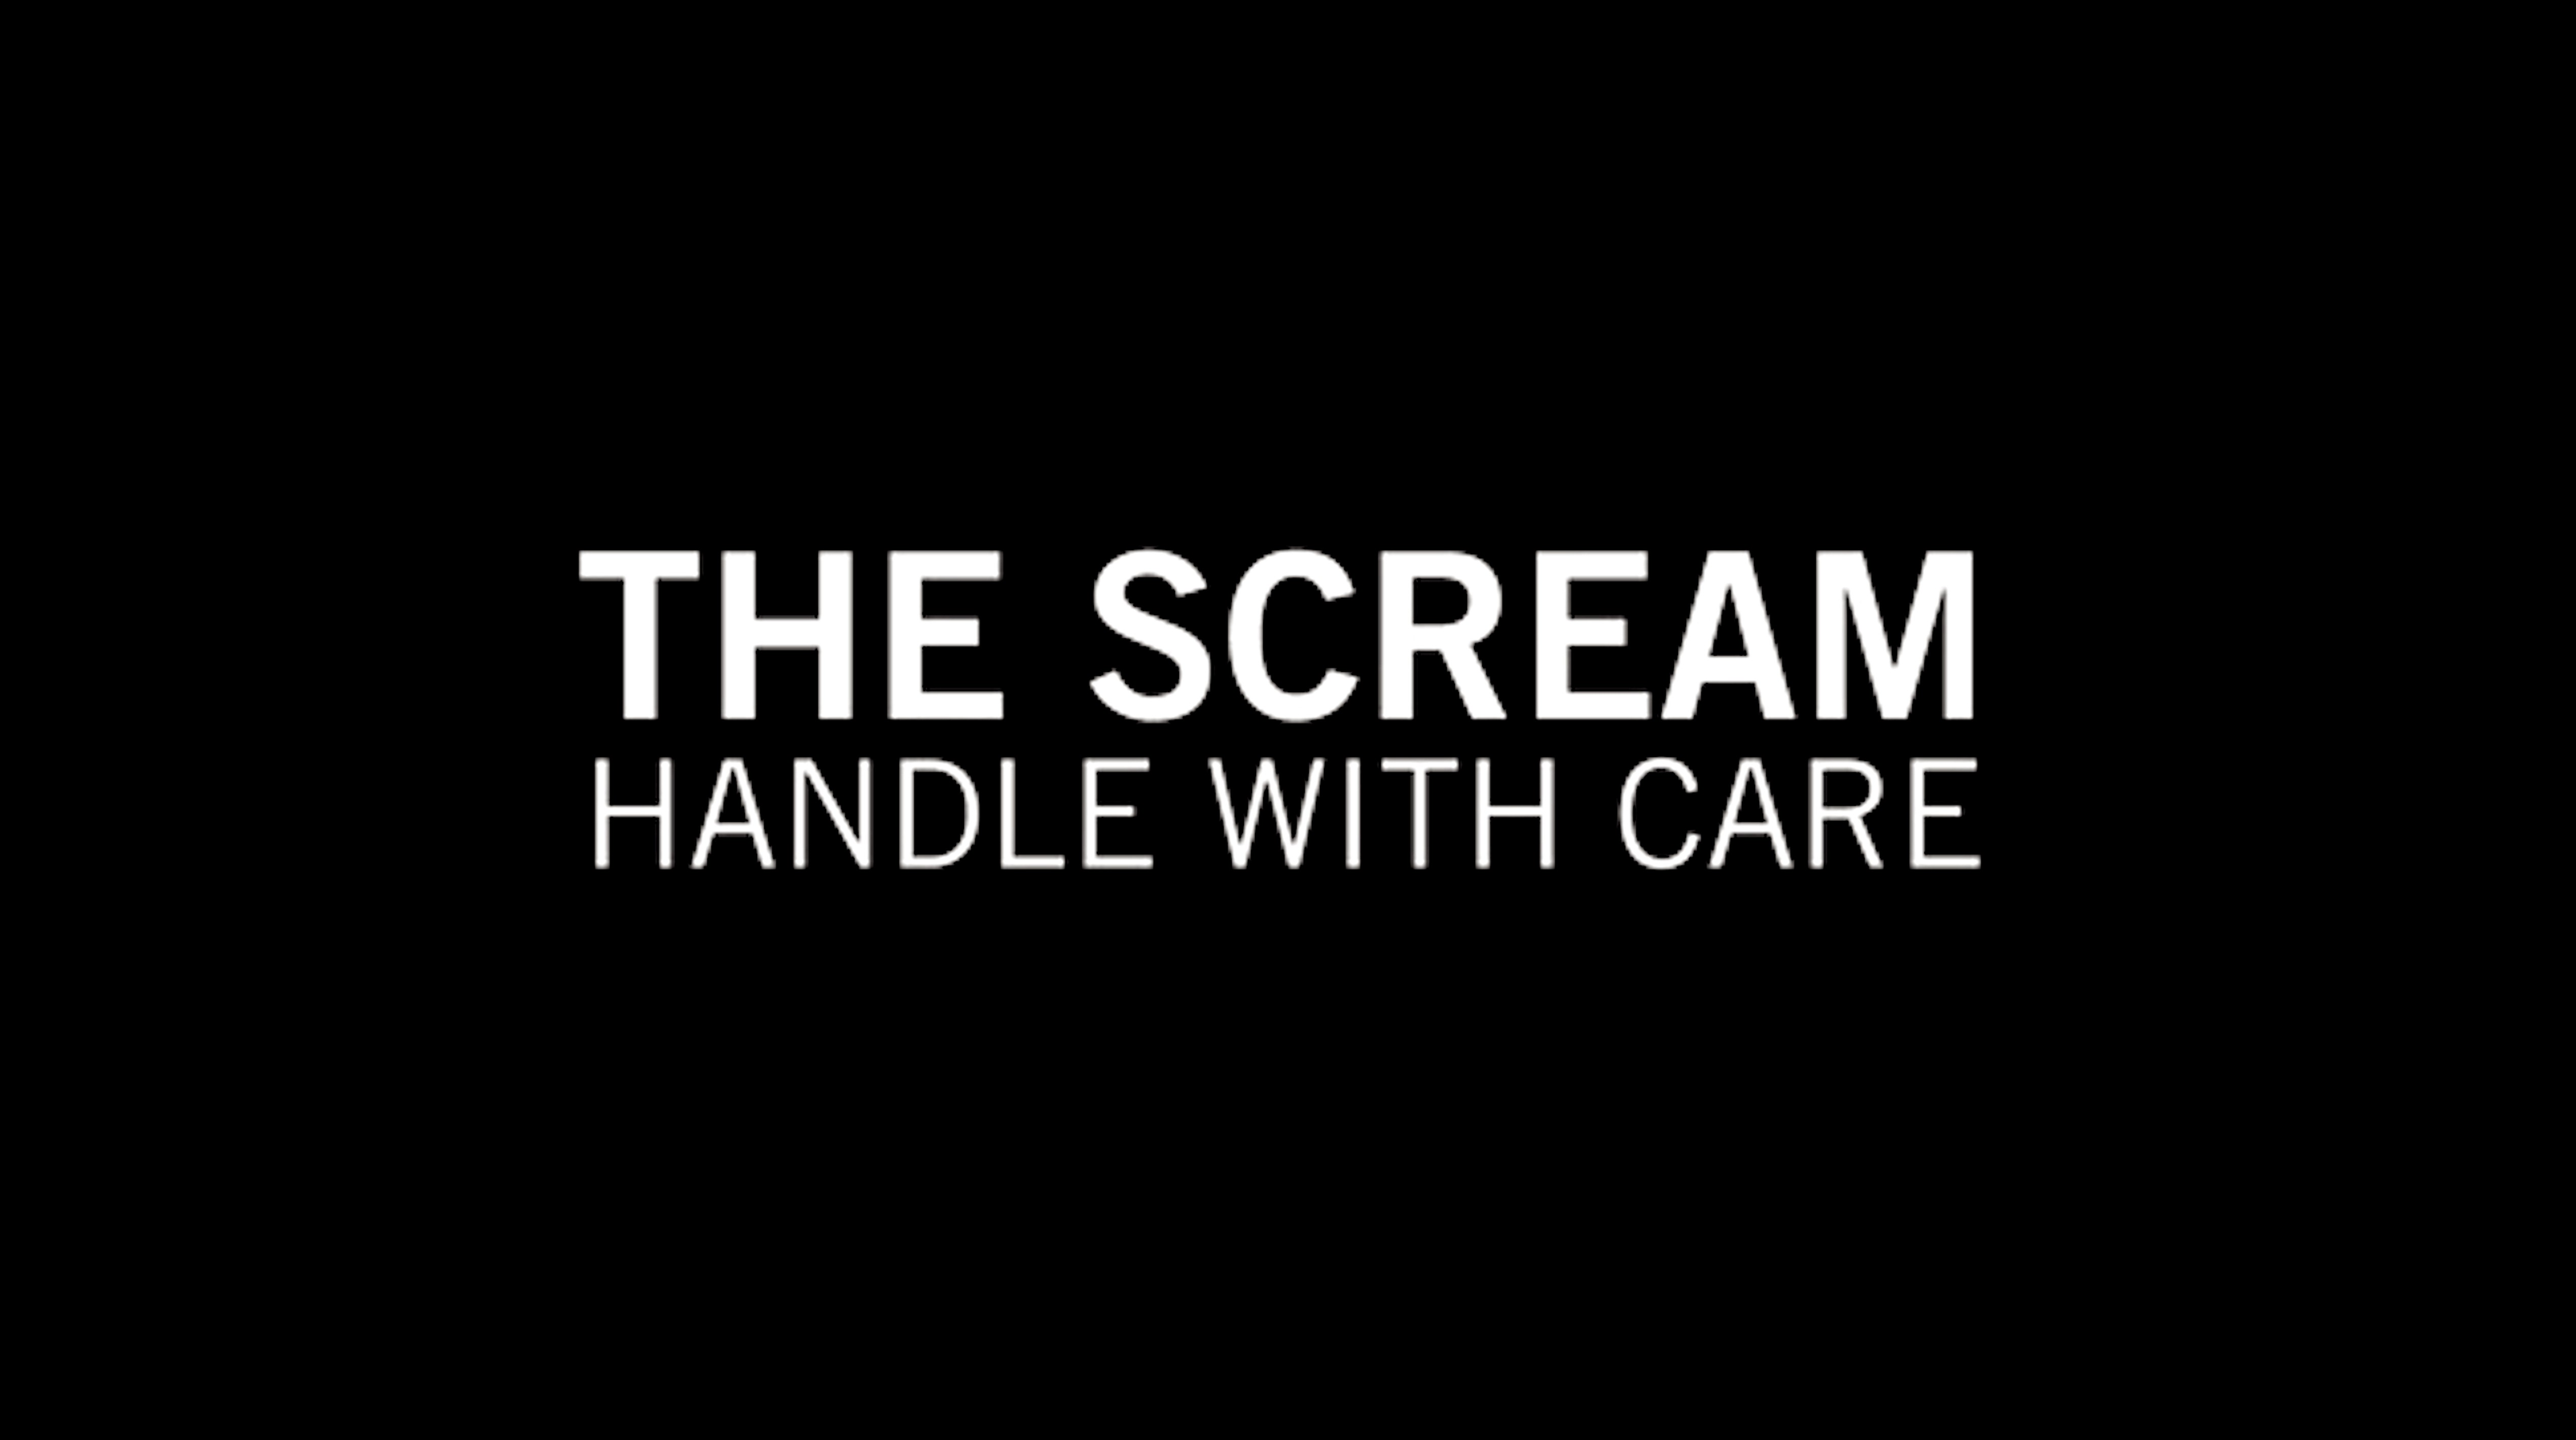 The Scream: Handle with care